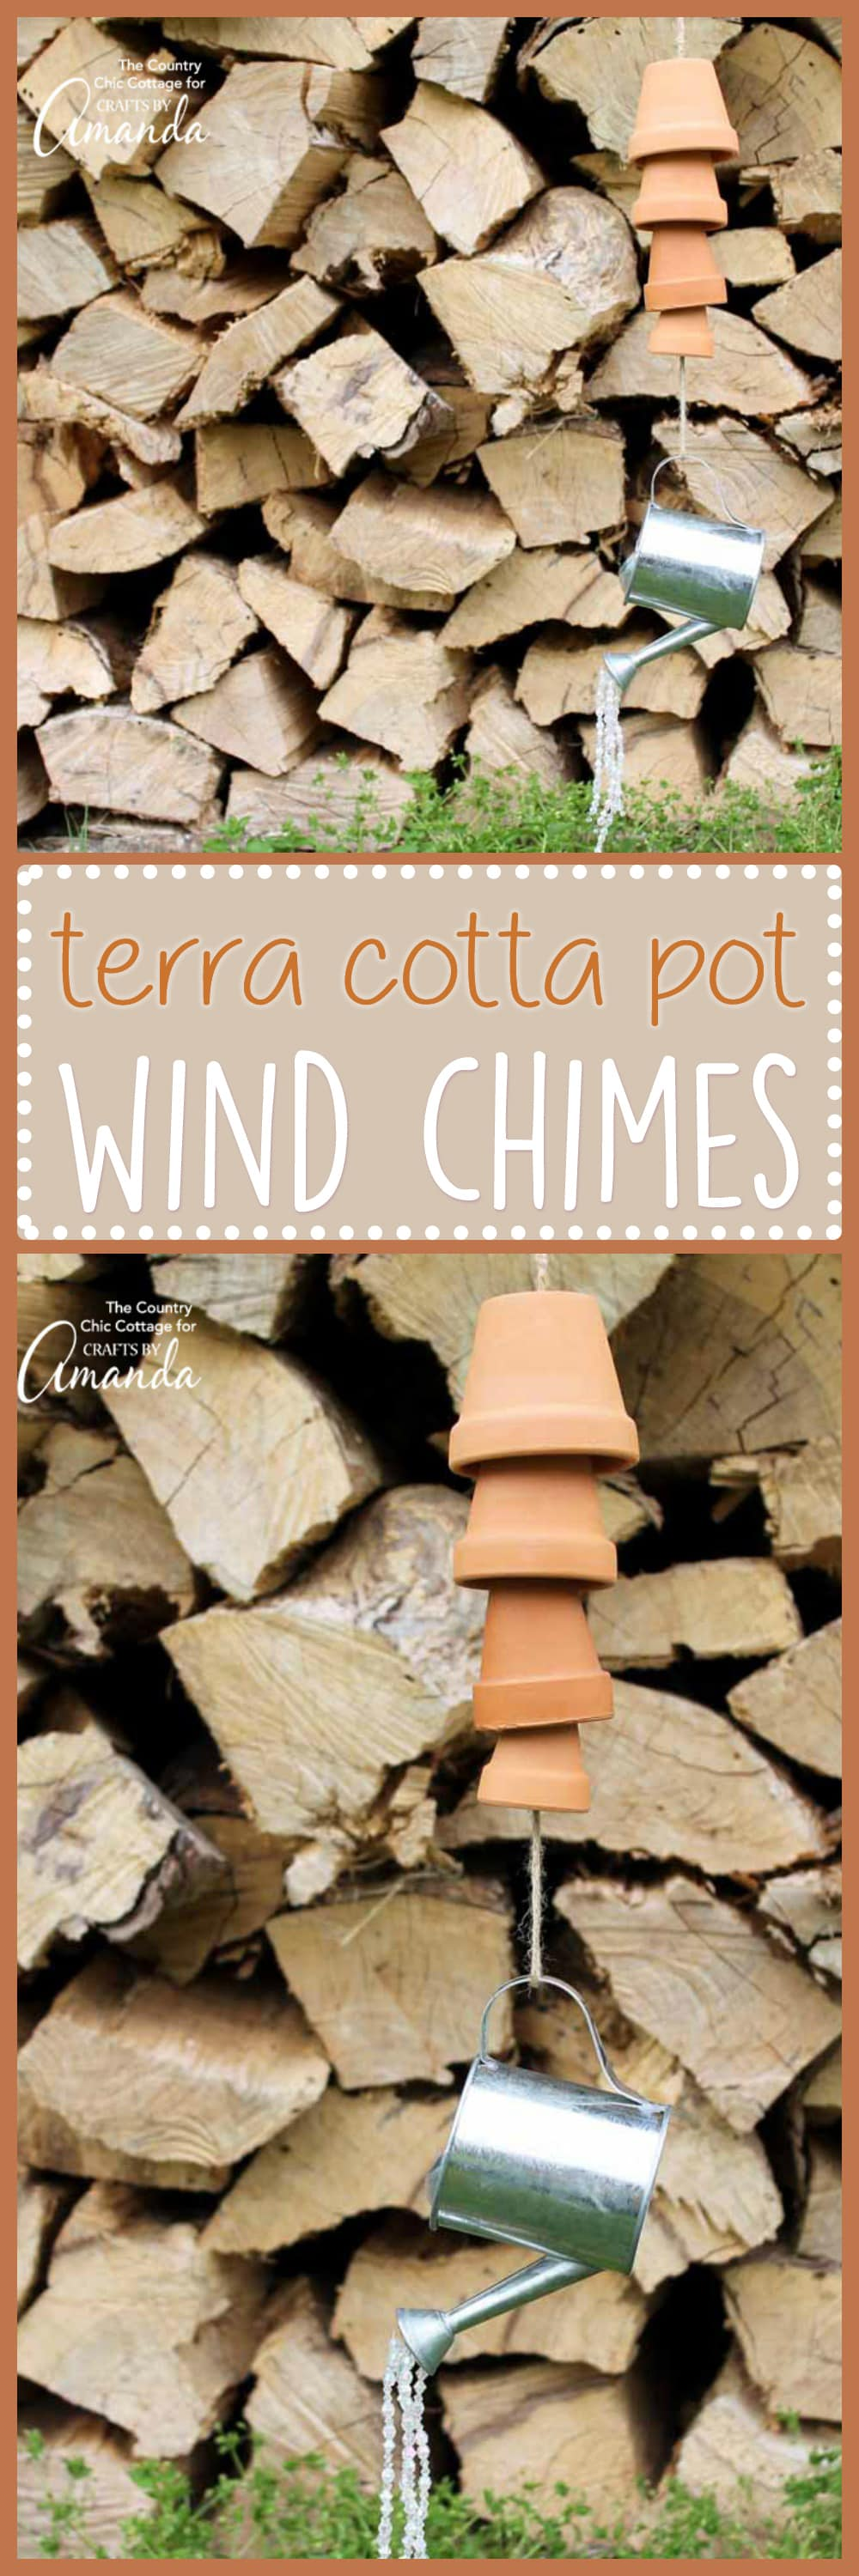 These Terra Cotta Pot Wind Chimes are an easy adult craft idea. Add various sizes of pots, wood beads, and twine to make music in your garden in minutes!